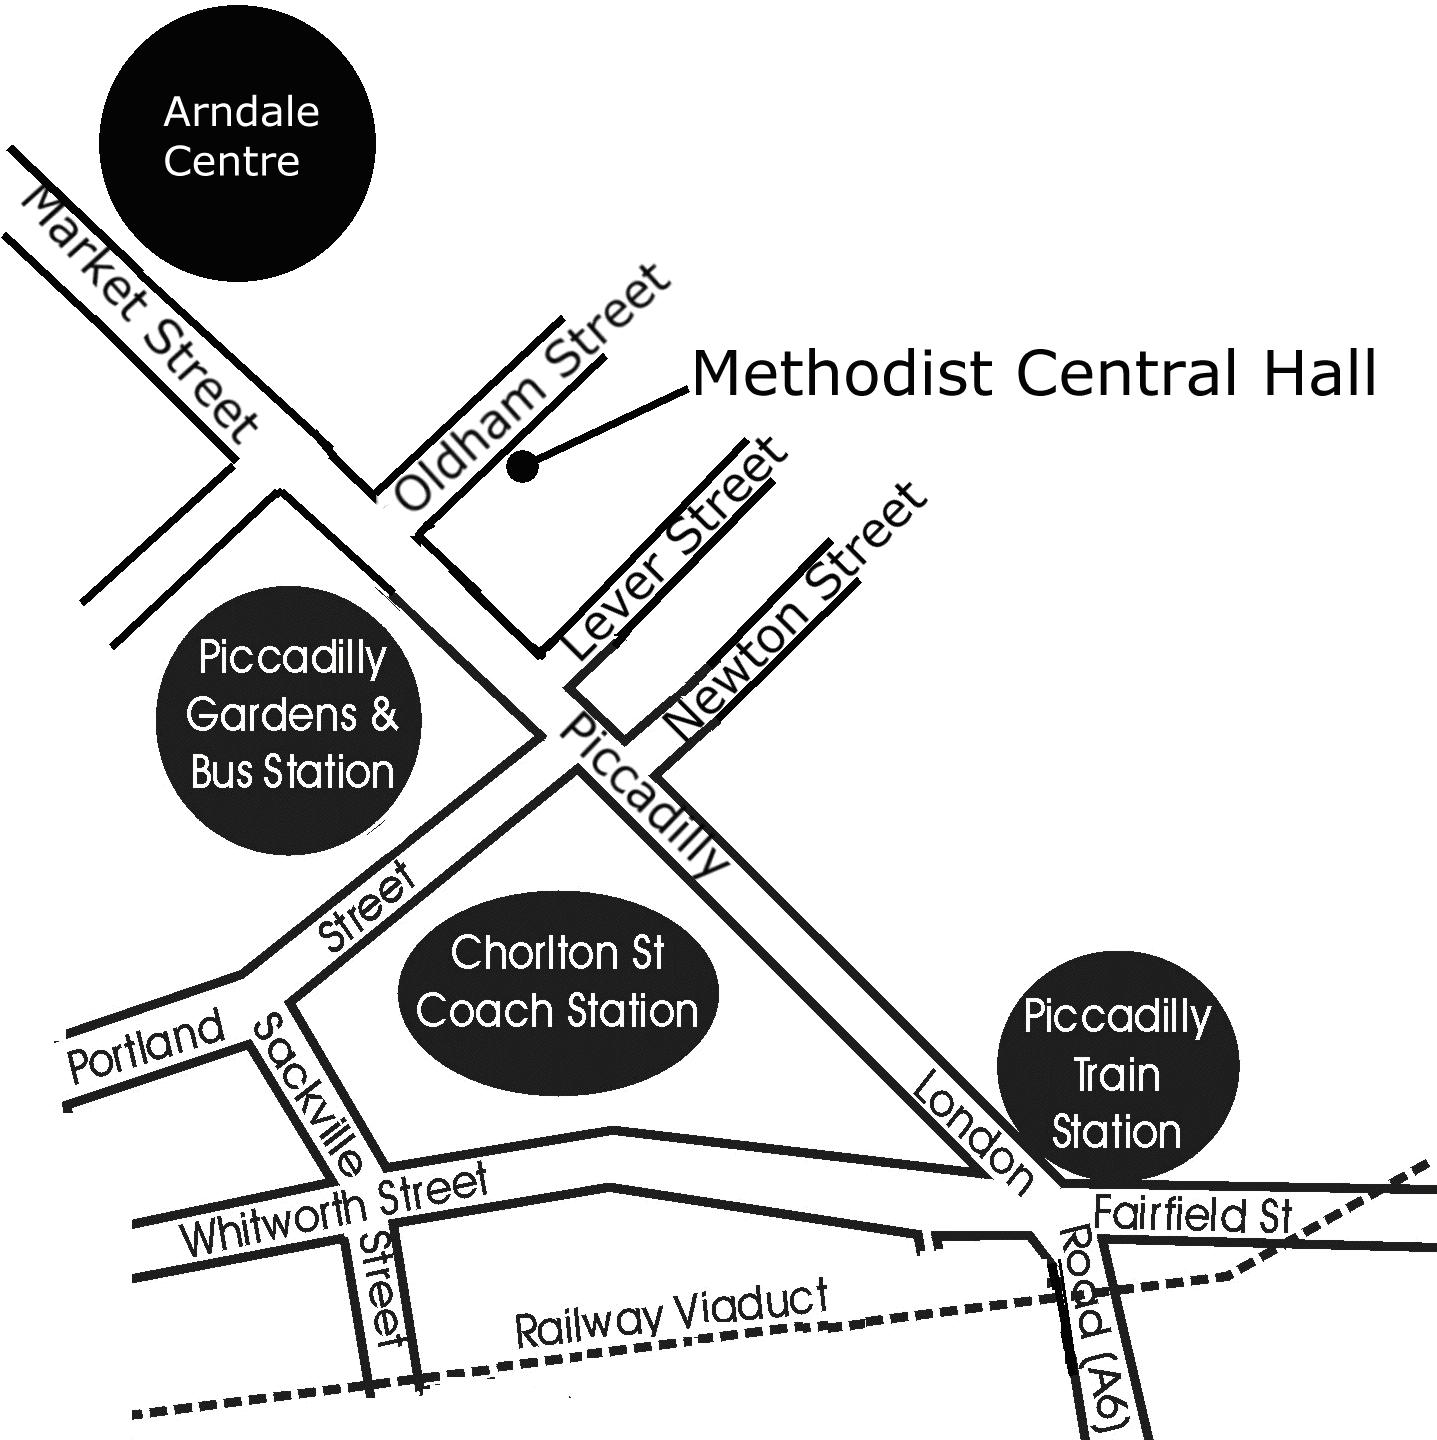 Map of Methodist Central Hall.JPG